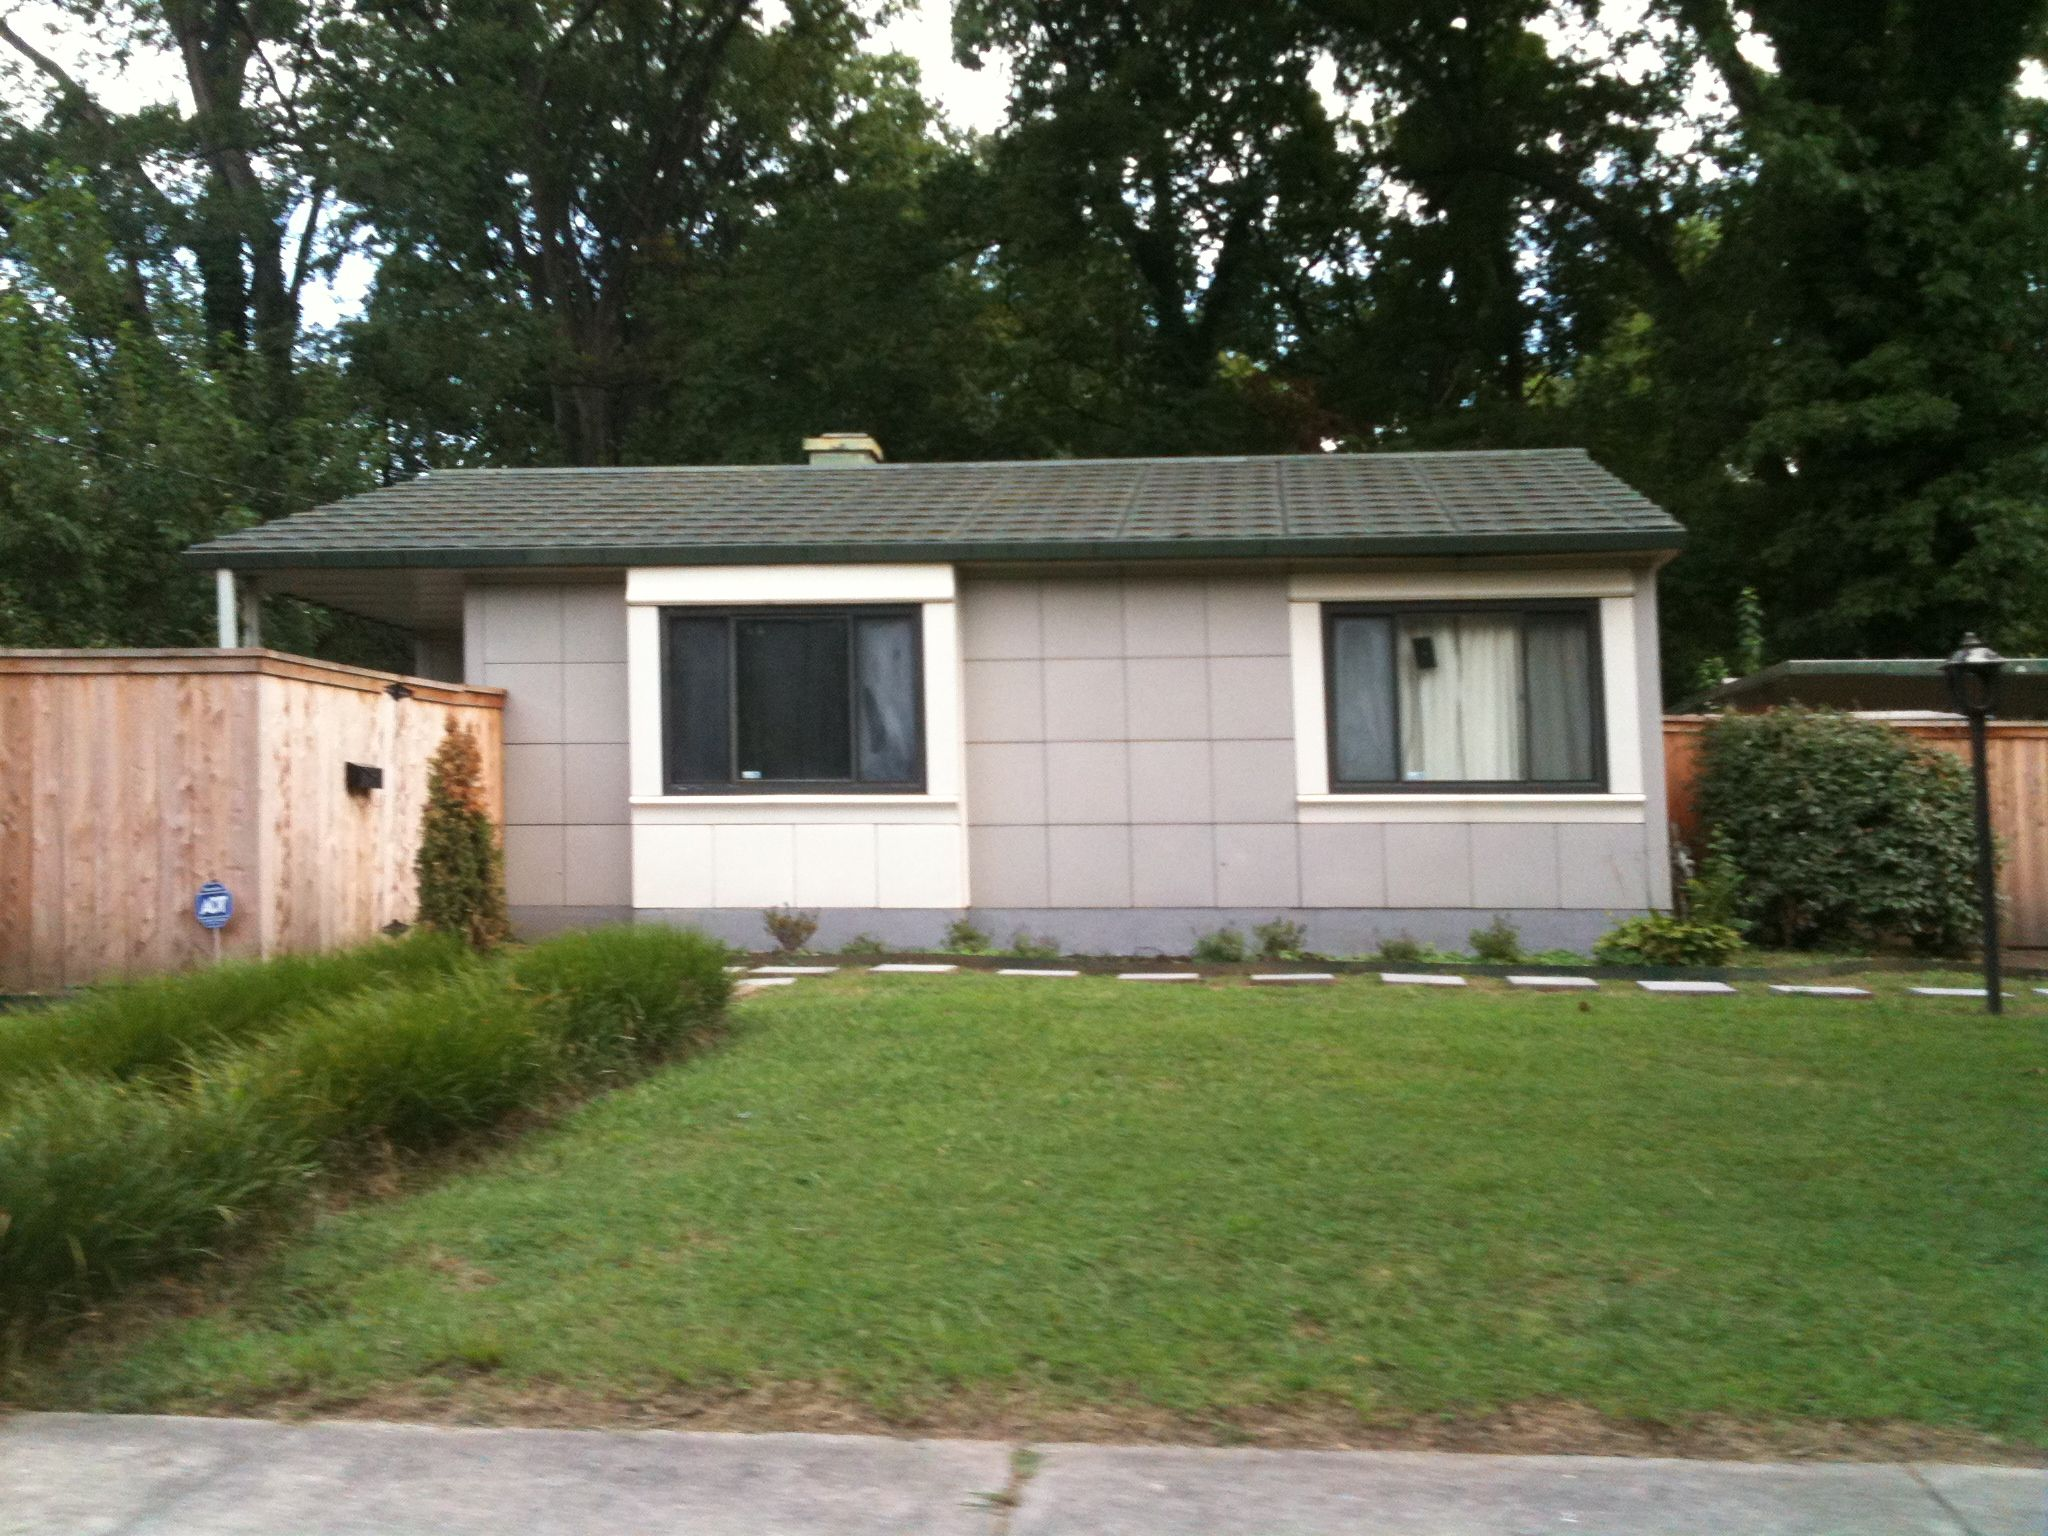 lustron home memphis tn just like ours pre siding 40s 50s